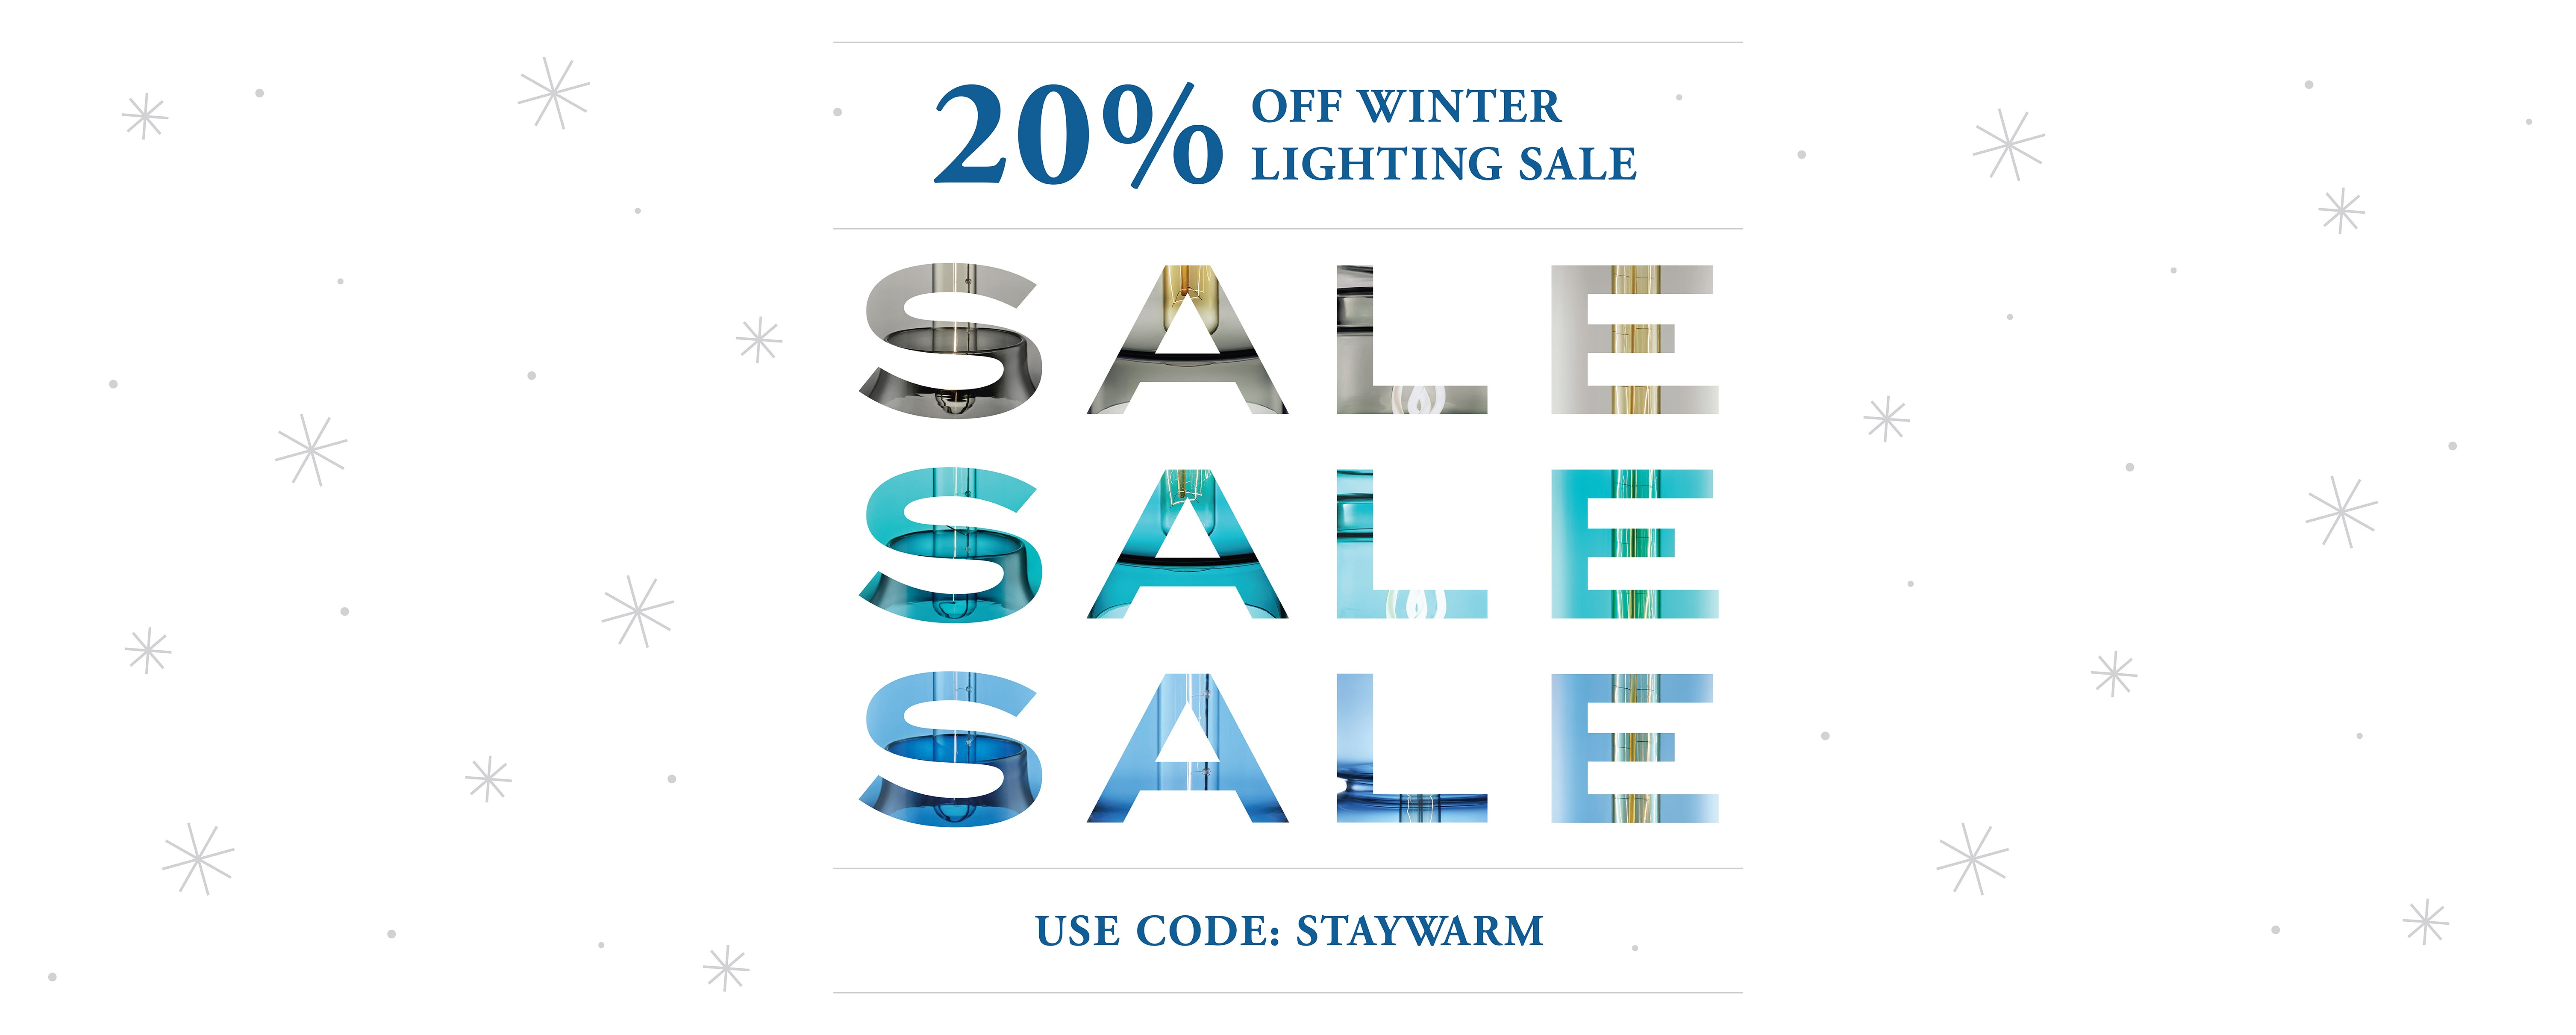 The Winter Lighting Sale